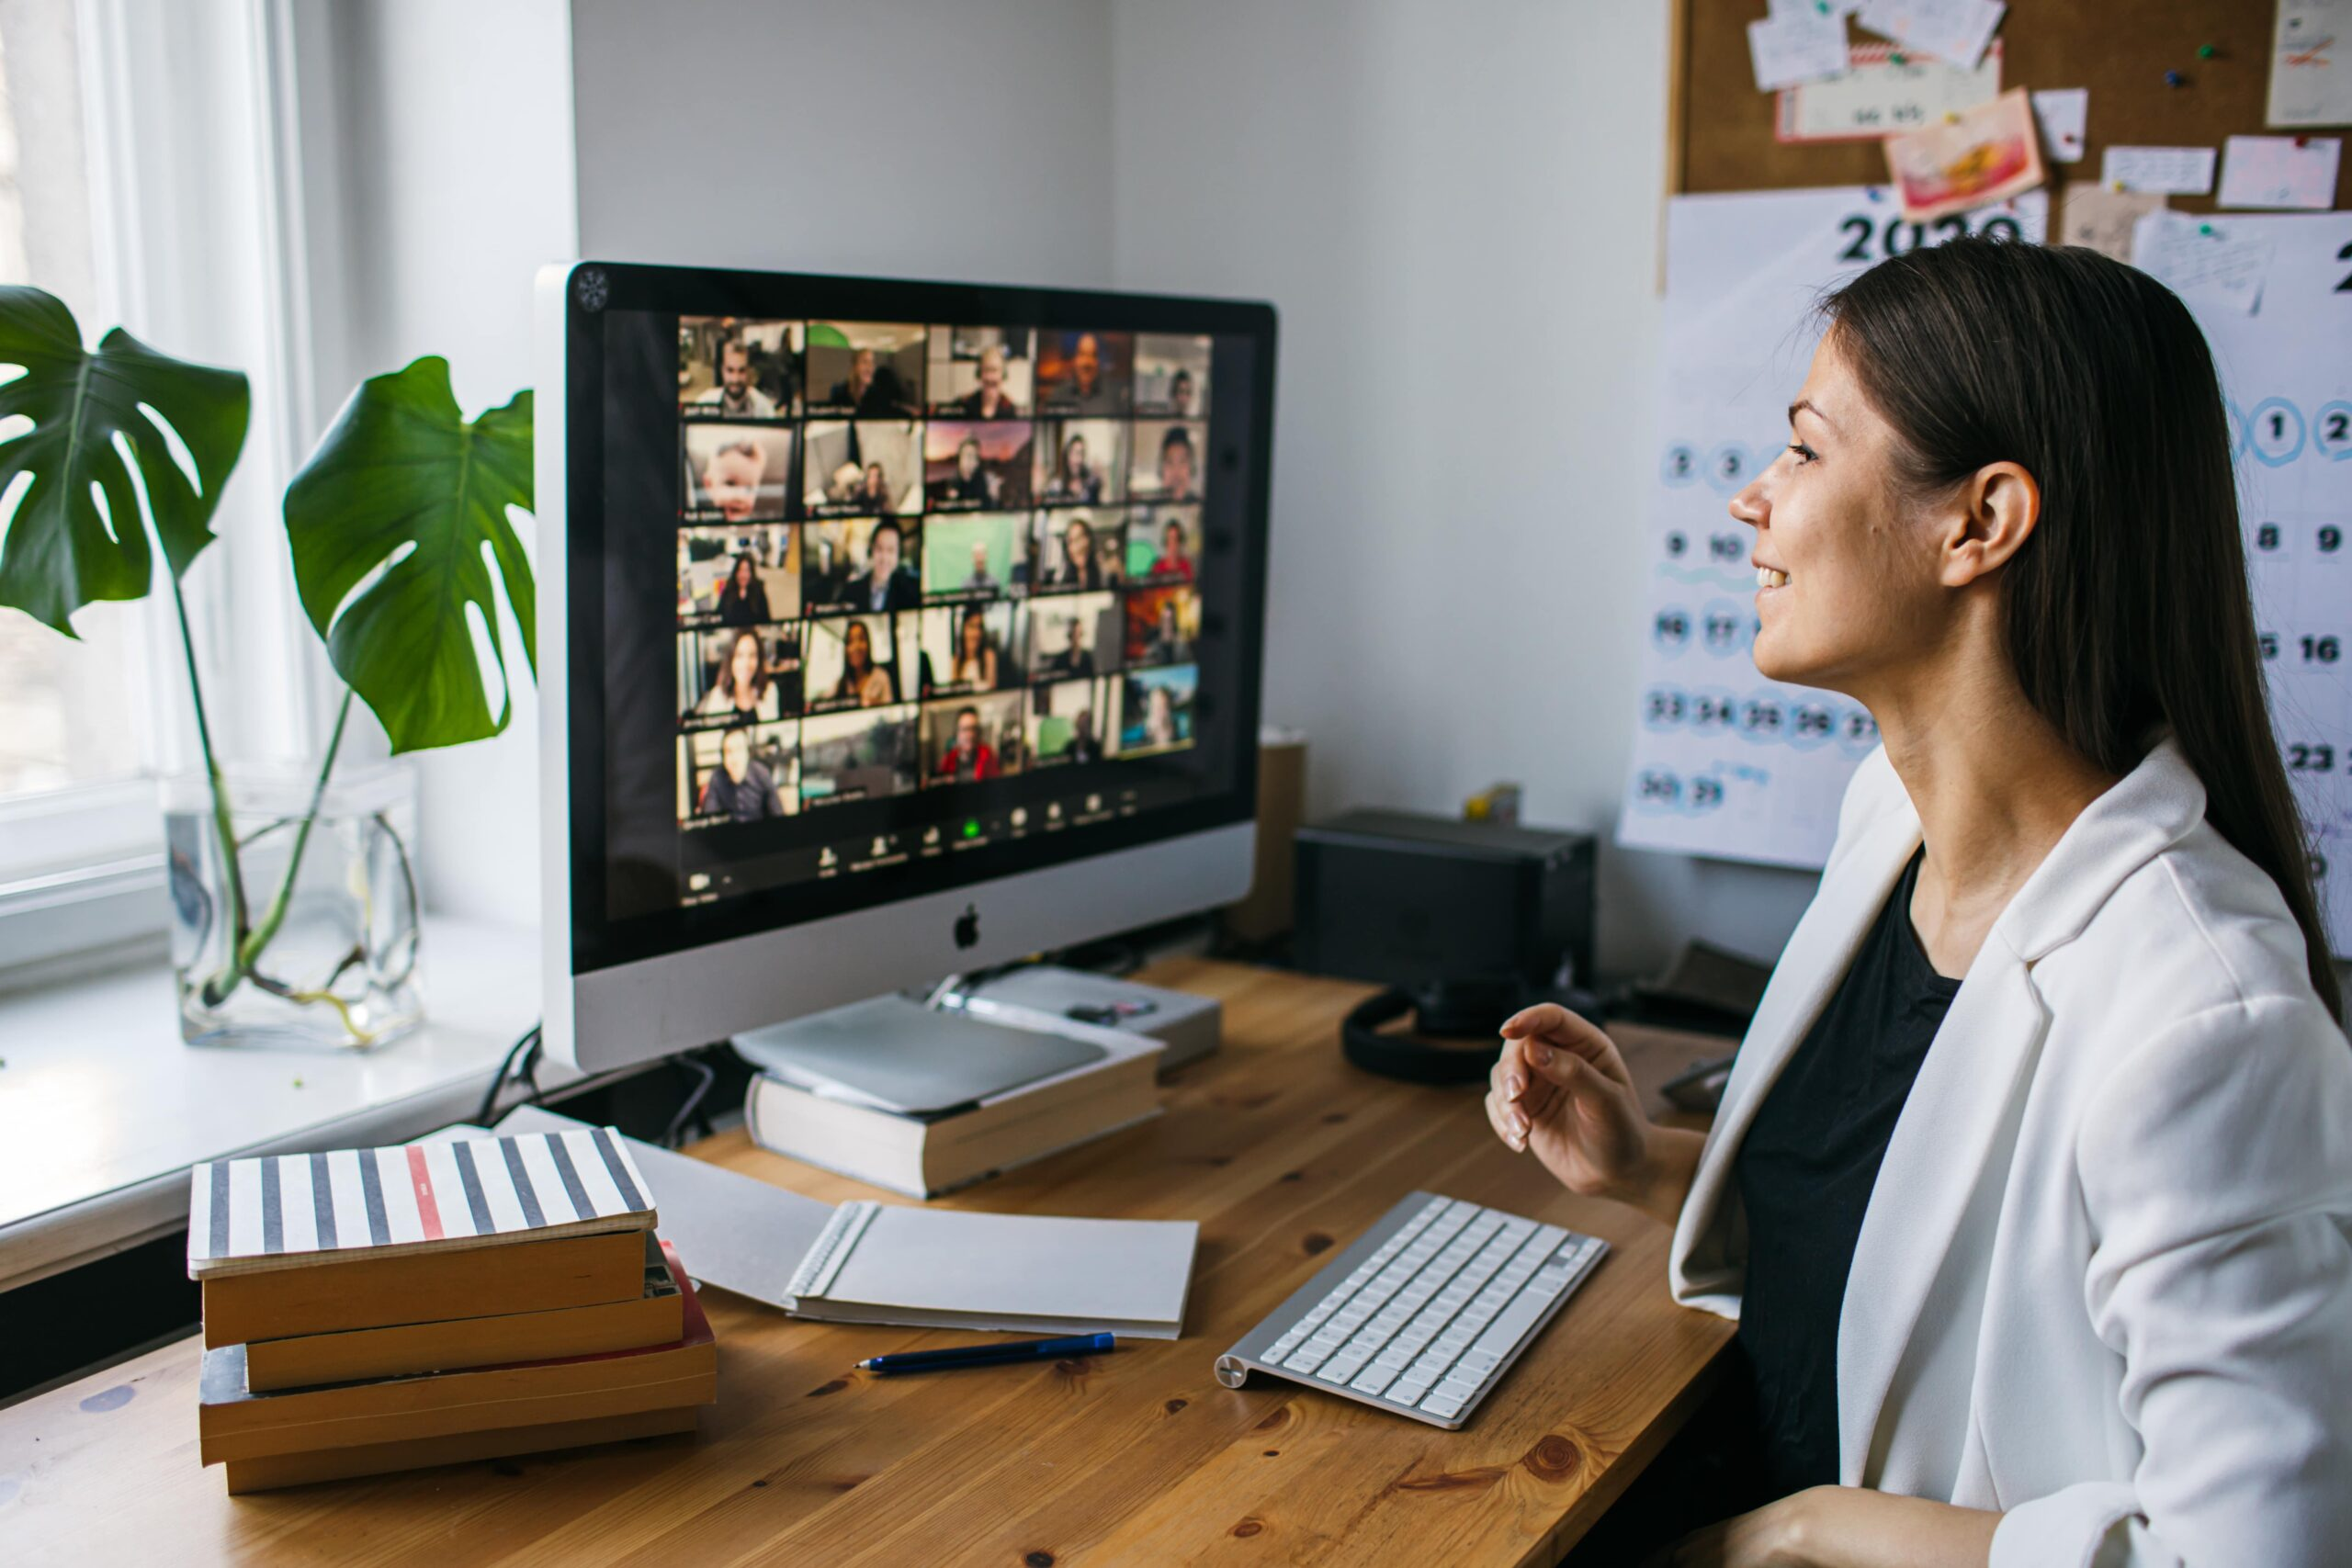 10 Zoom Tips to Make Your Meetings More Secure